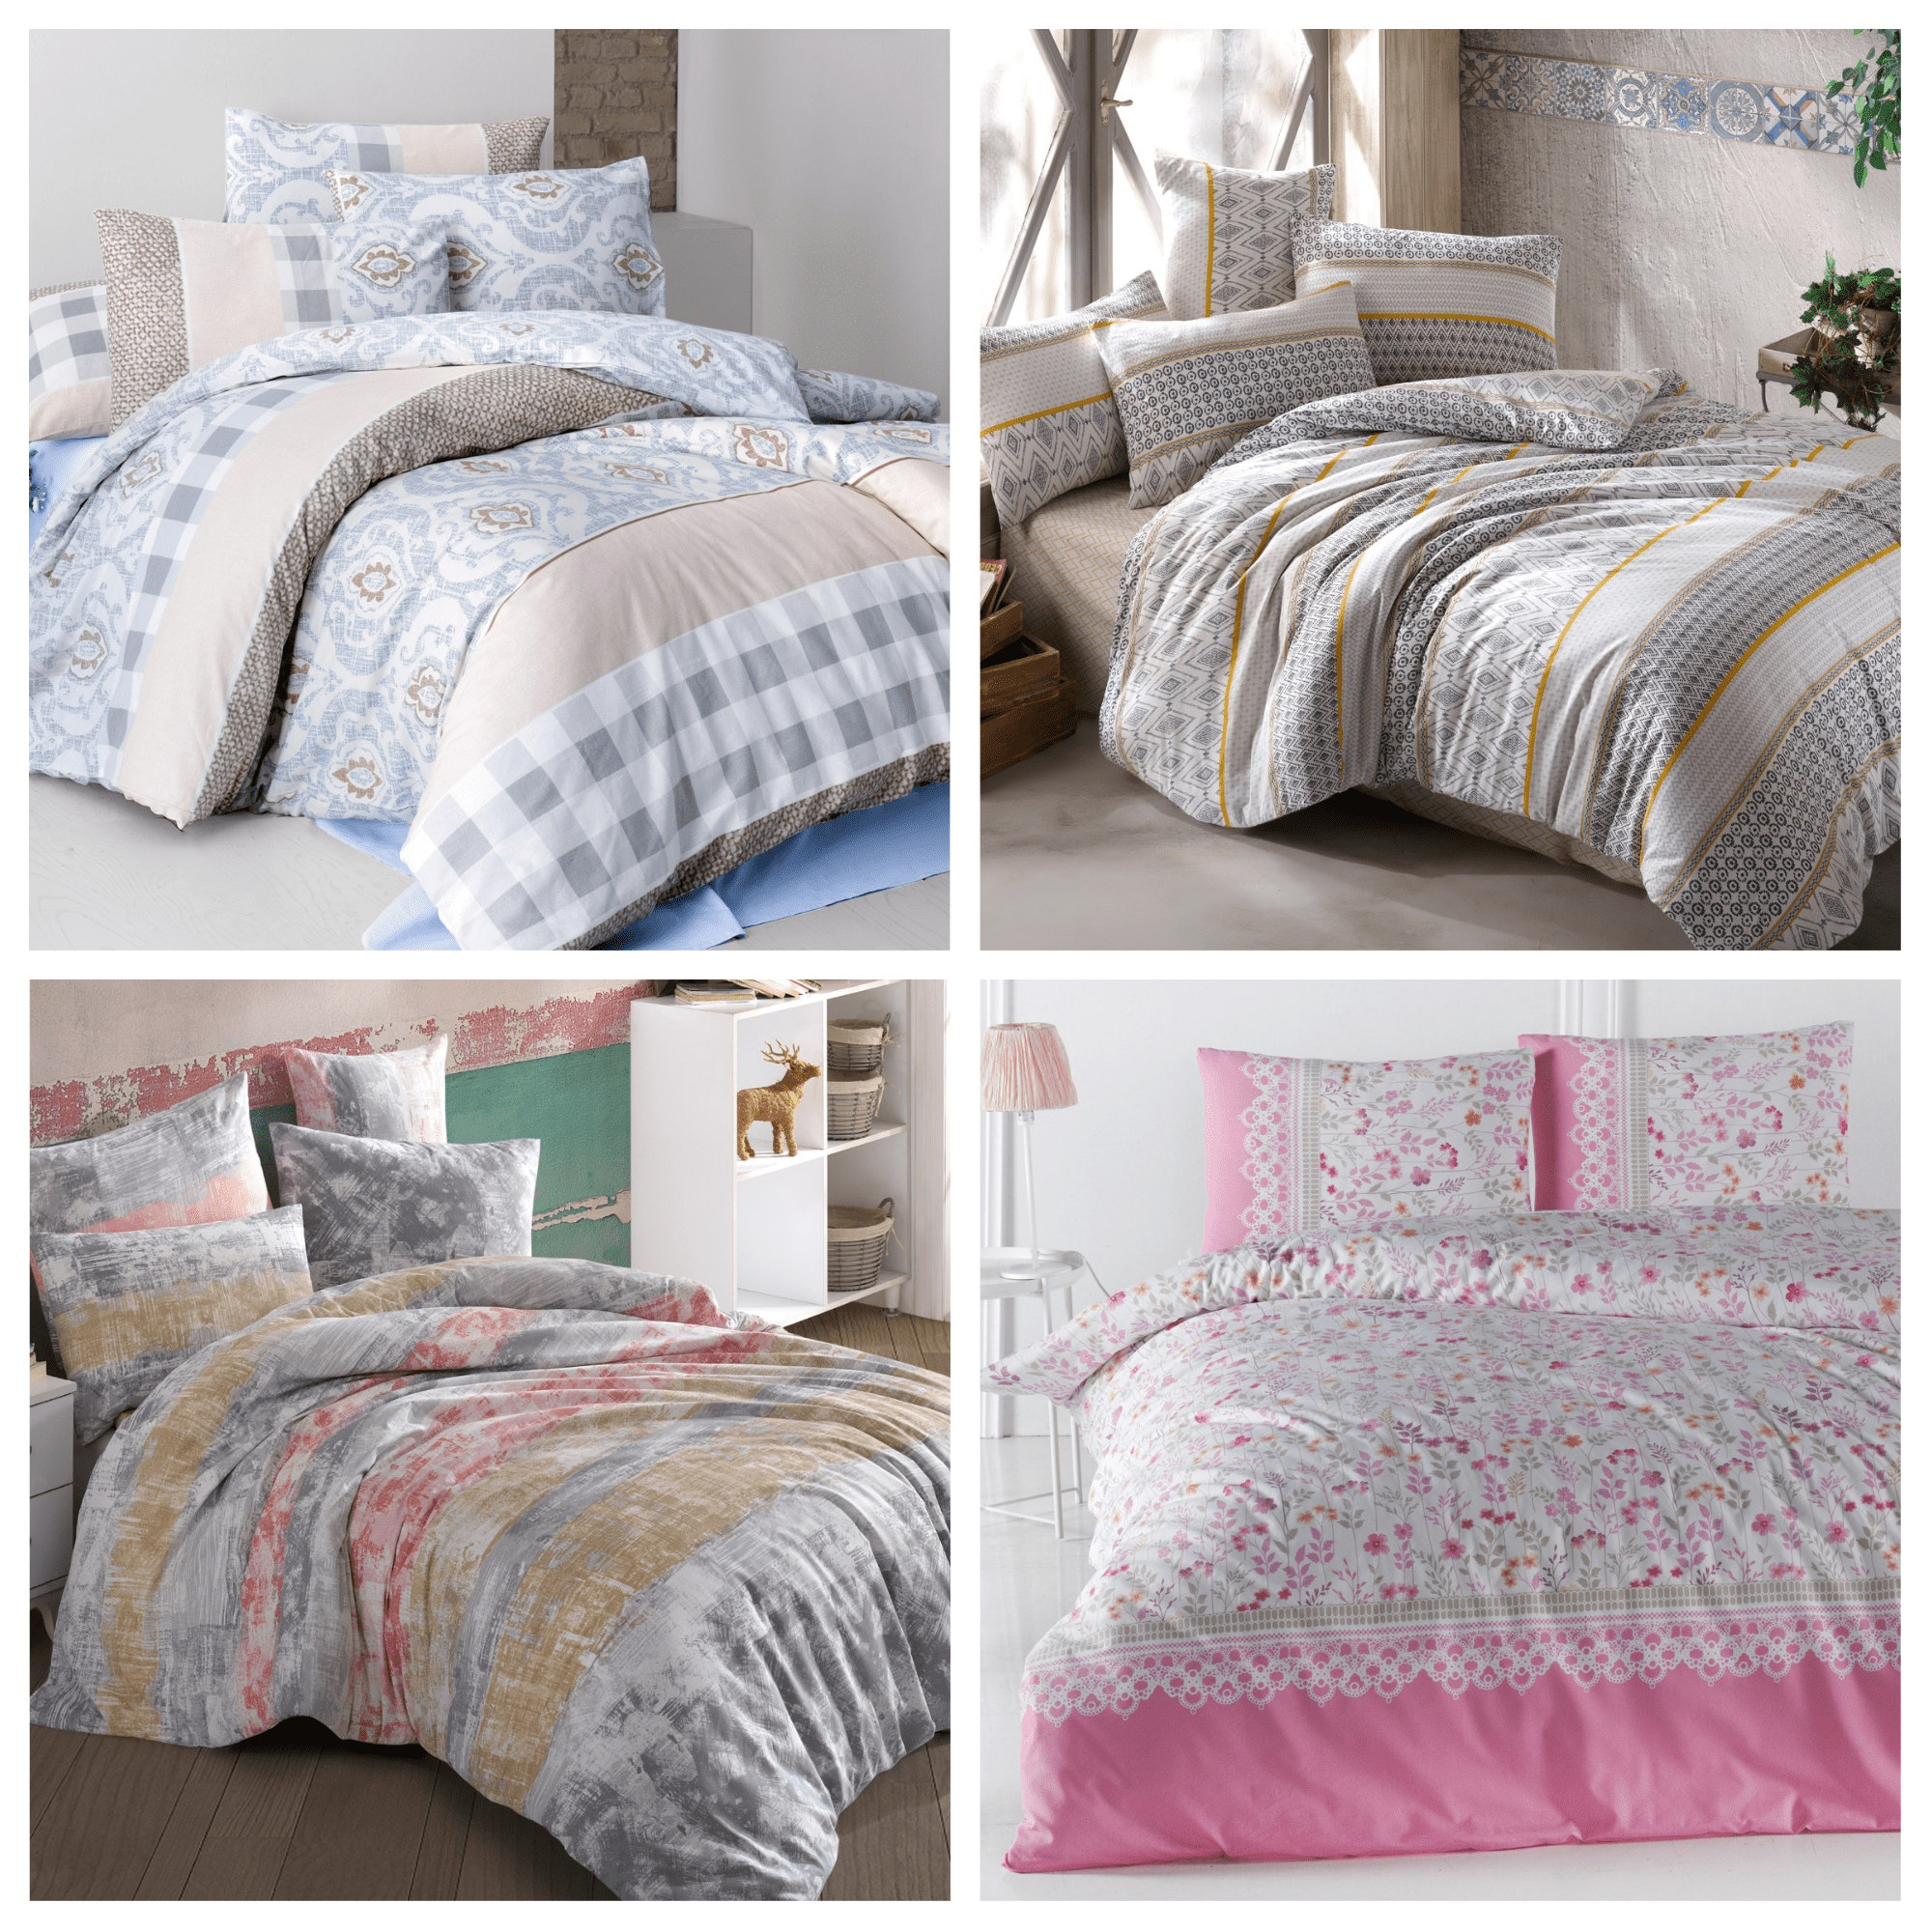 Bedding Set Fitted Sheet With 100% Cotton | Luxury Ranforce Bed Linen Set 3 Pcs Duvet Cover Bed Set Cover Set From Turkey Pamuya